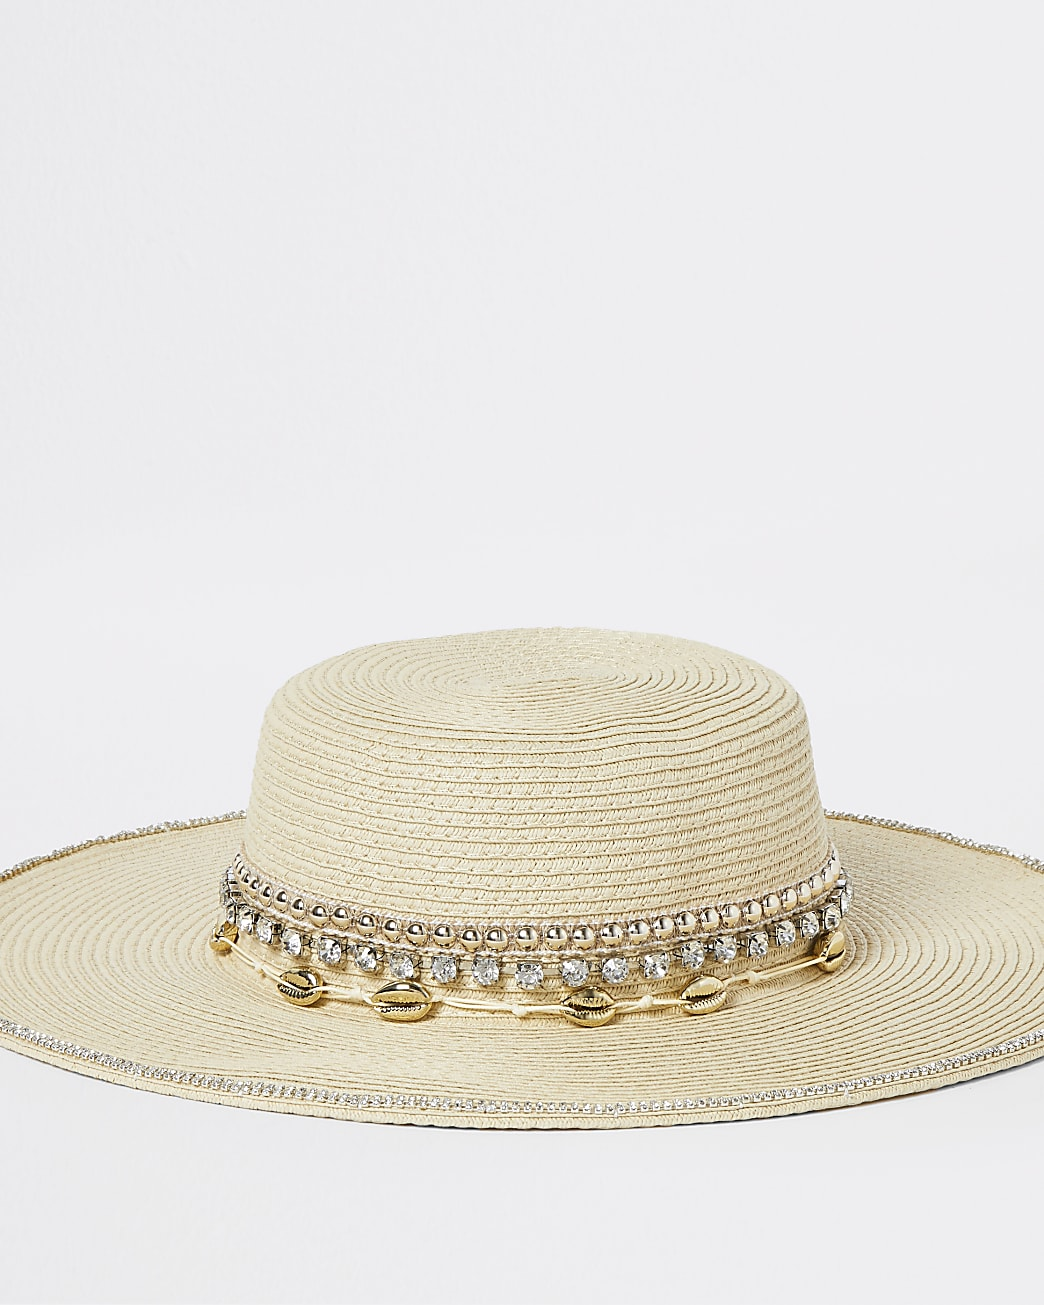 Beige shell and diamond embellished straw hat